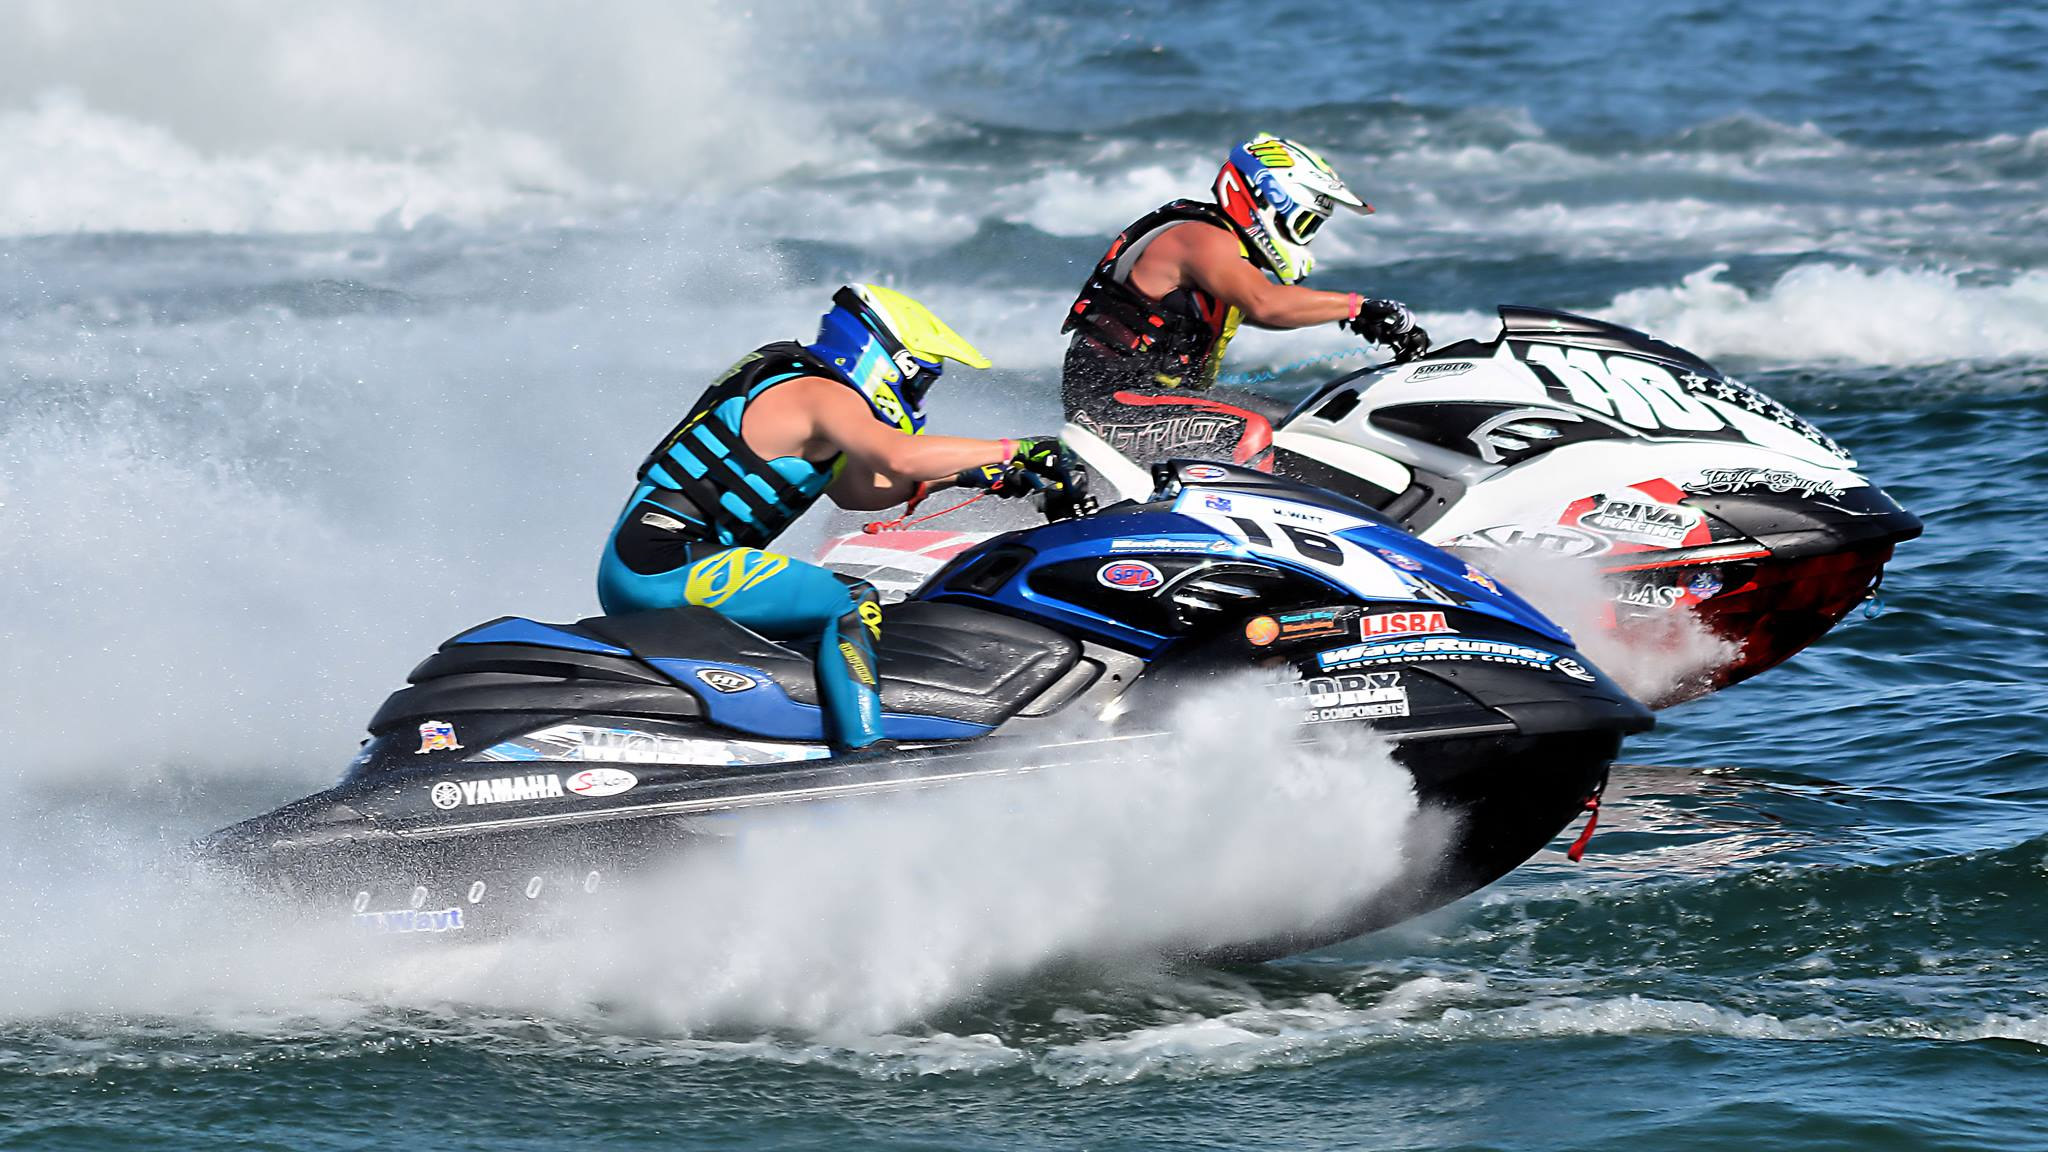 Yamaha Waverunners Australia Congratulates Mitch Wayt On Wf Result The Watercraft Journal The Best Resource For Jetski Waverunner And Seadoo Enthusiasts And Most Popular Personal Watercraft Site In The World